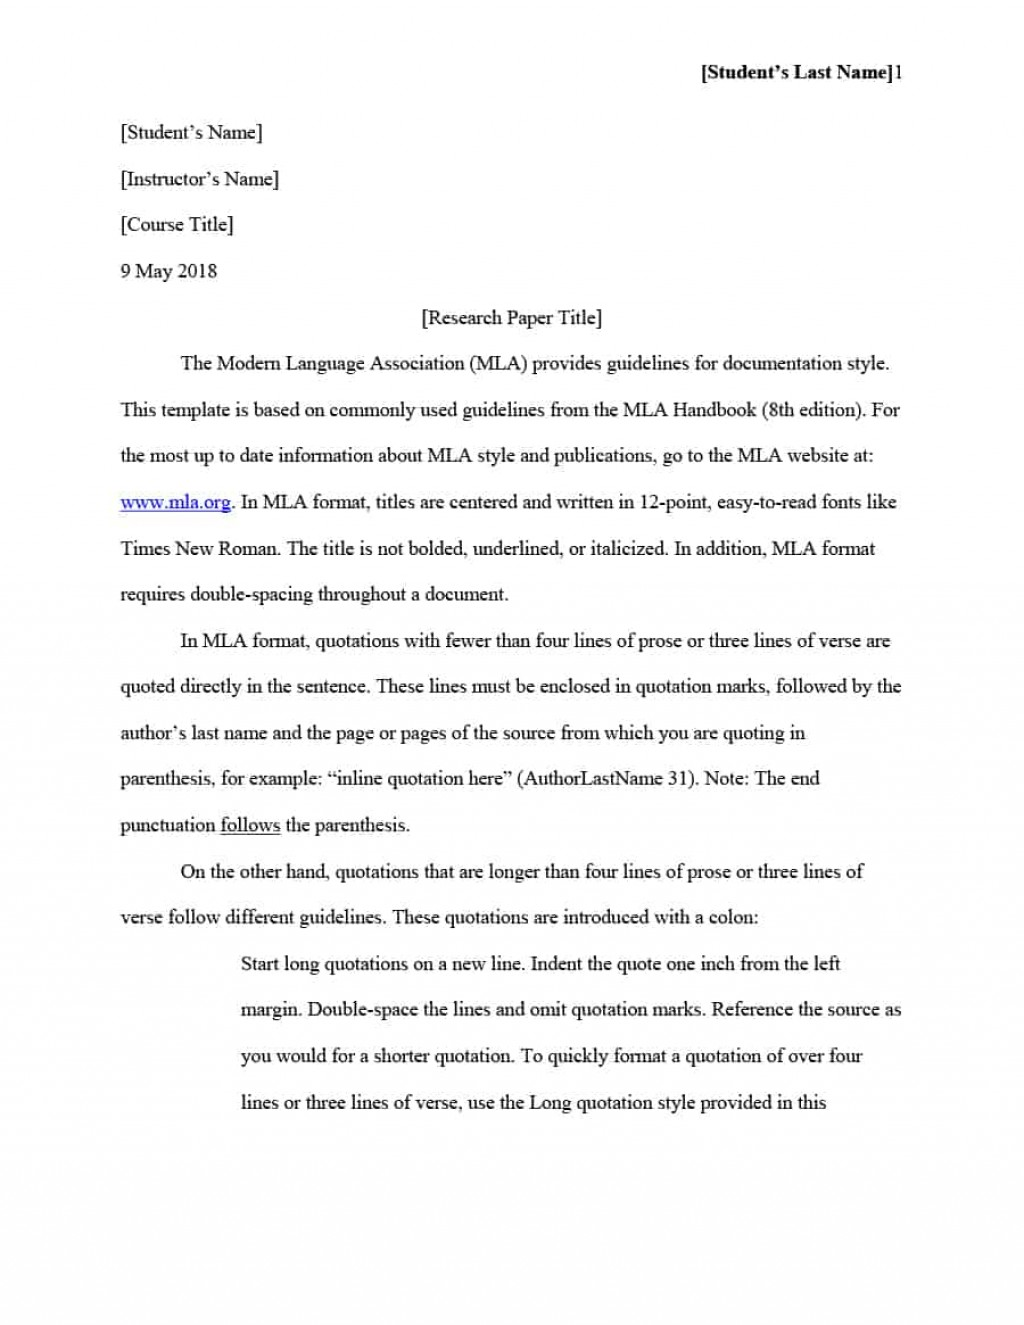 024 Citing Sources In An Essay Example Mla Format Template Phenomenal Argumentative Expository College Large